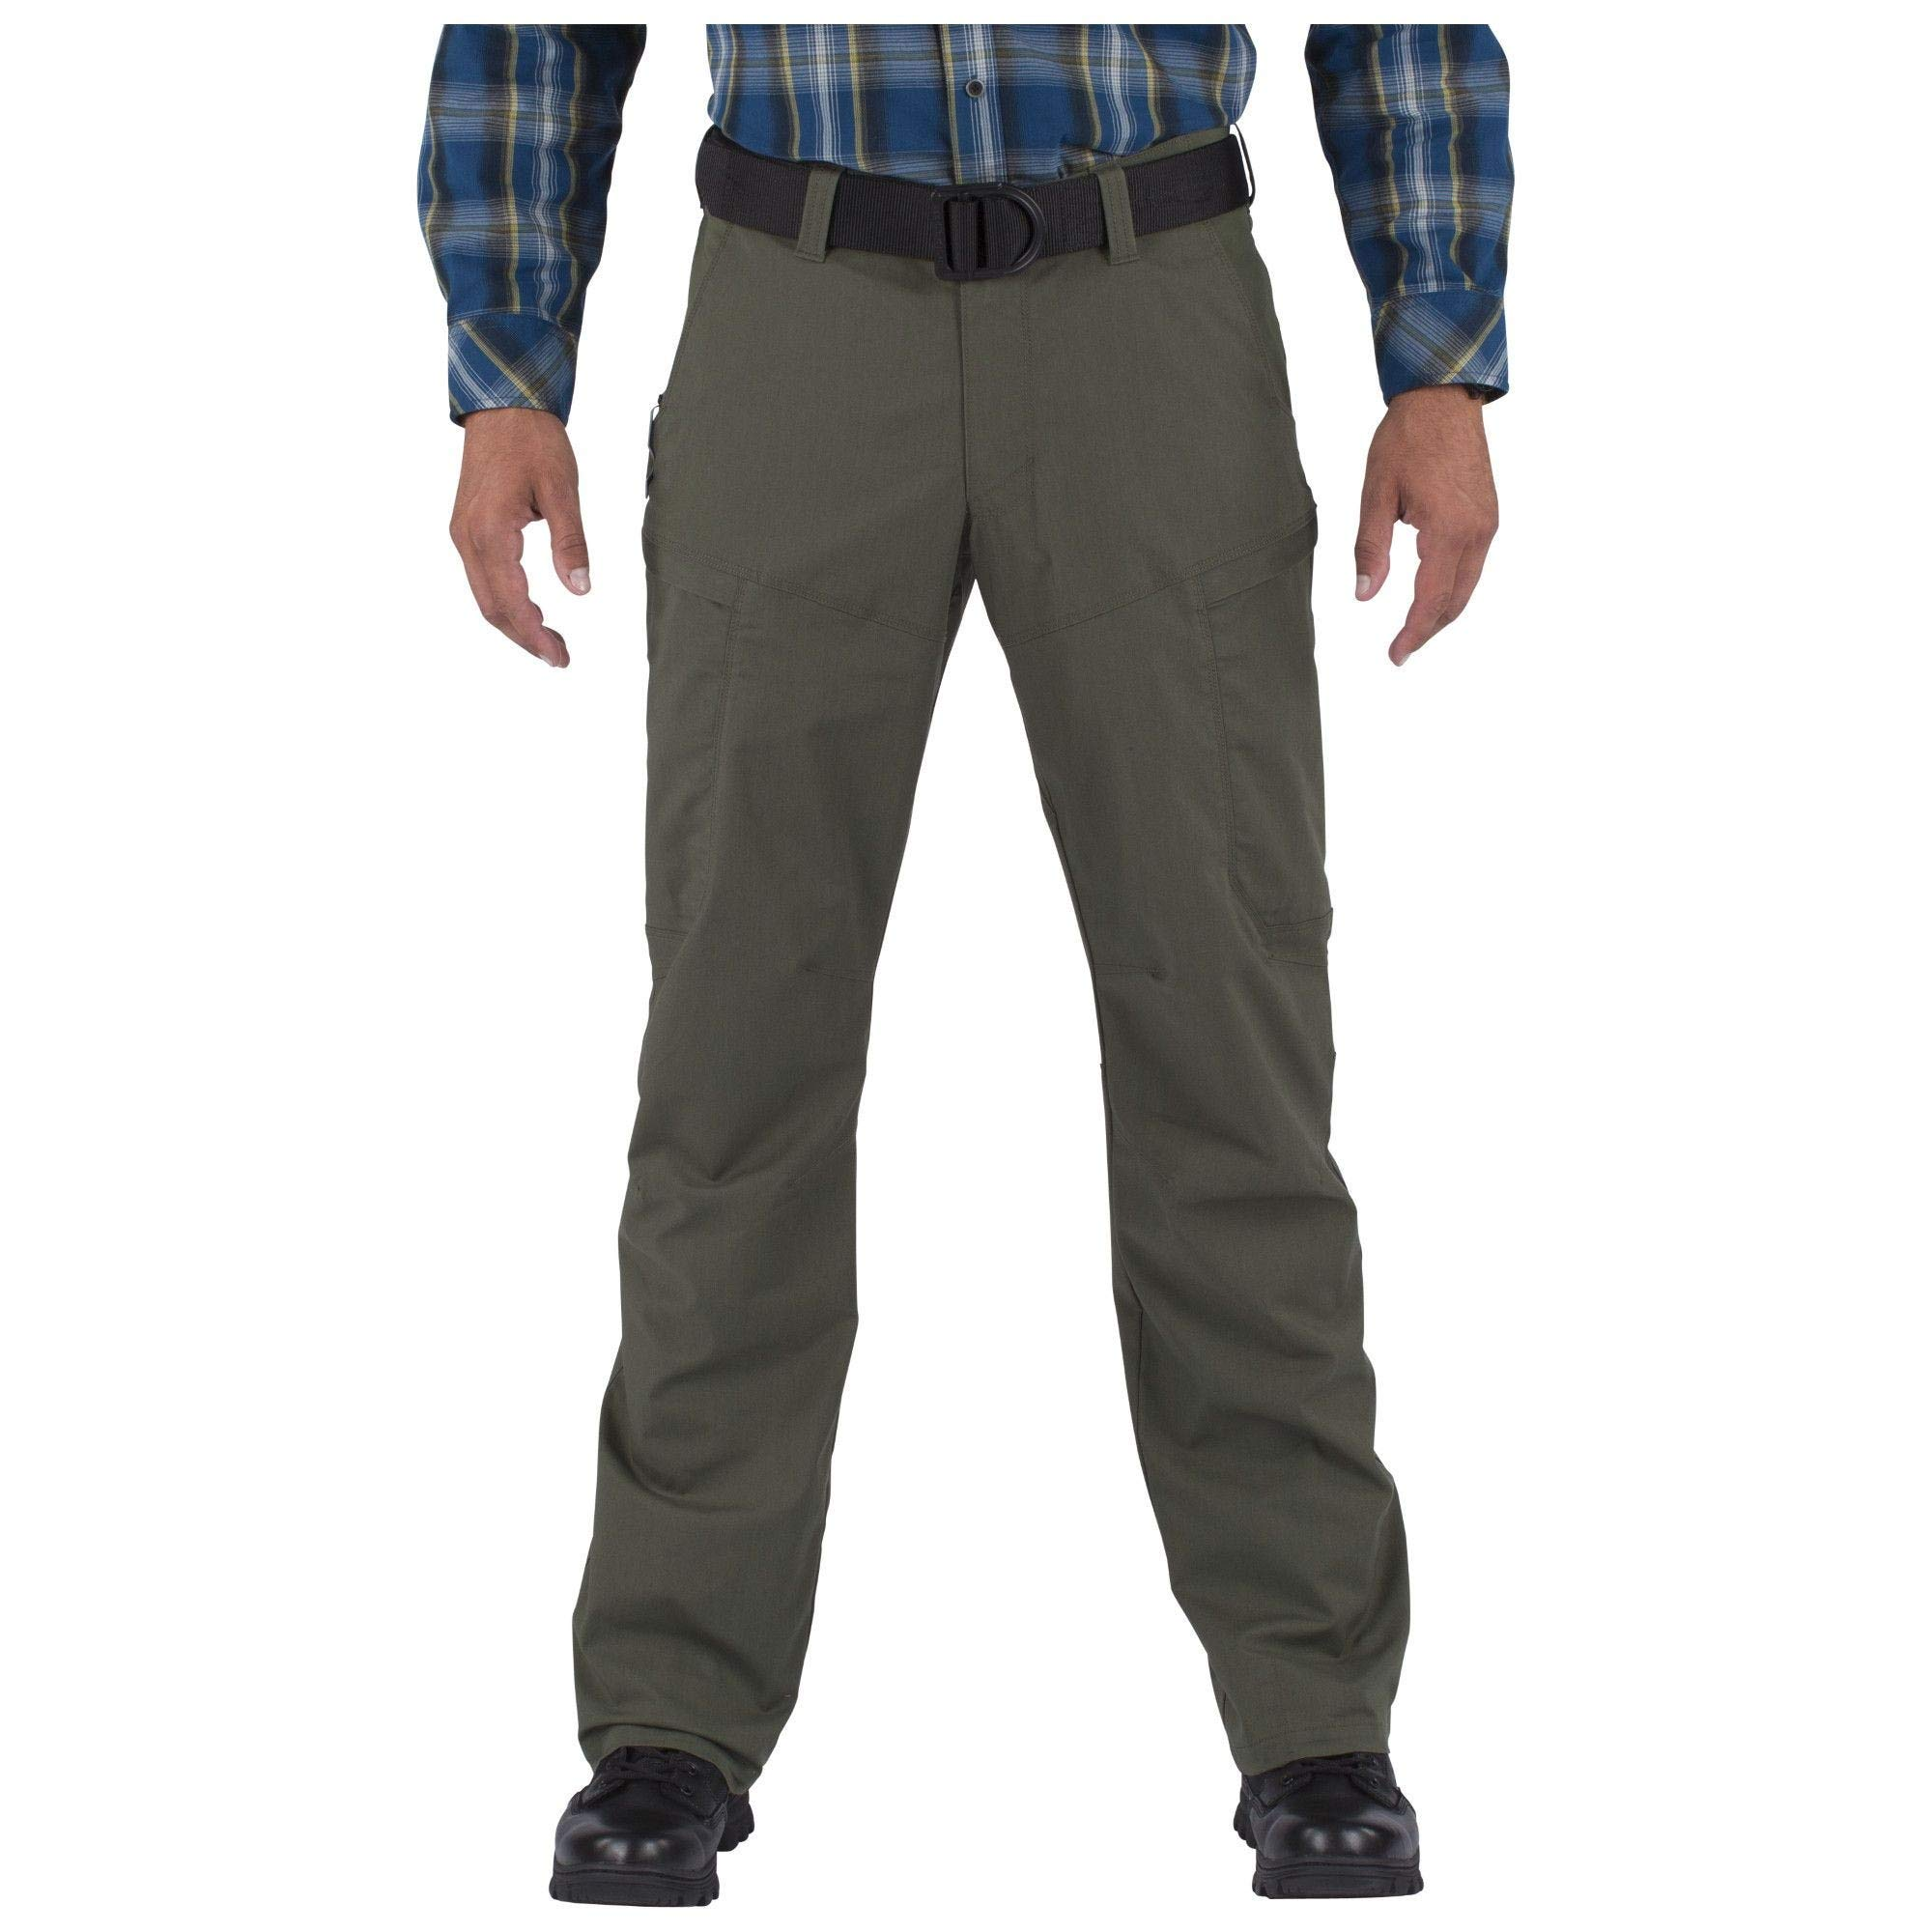 5.11 Tactical Men's Apex Cargo Work Pants, Flex-Tac Stretch Fabric, Gusseted, Teflon Finish, Style 74434